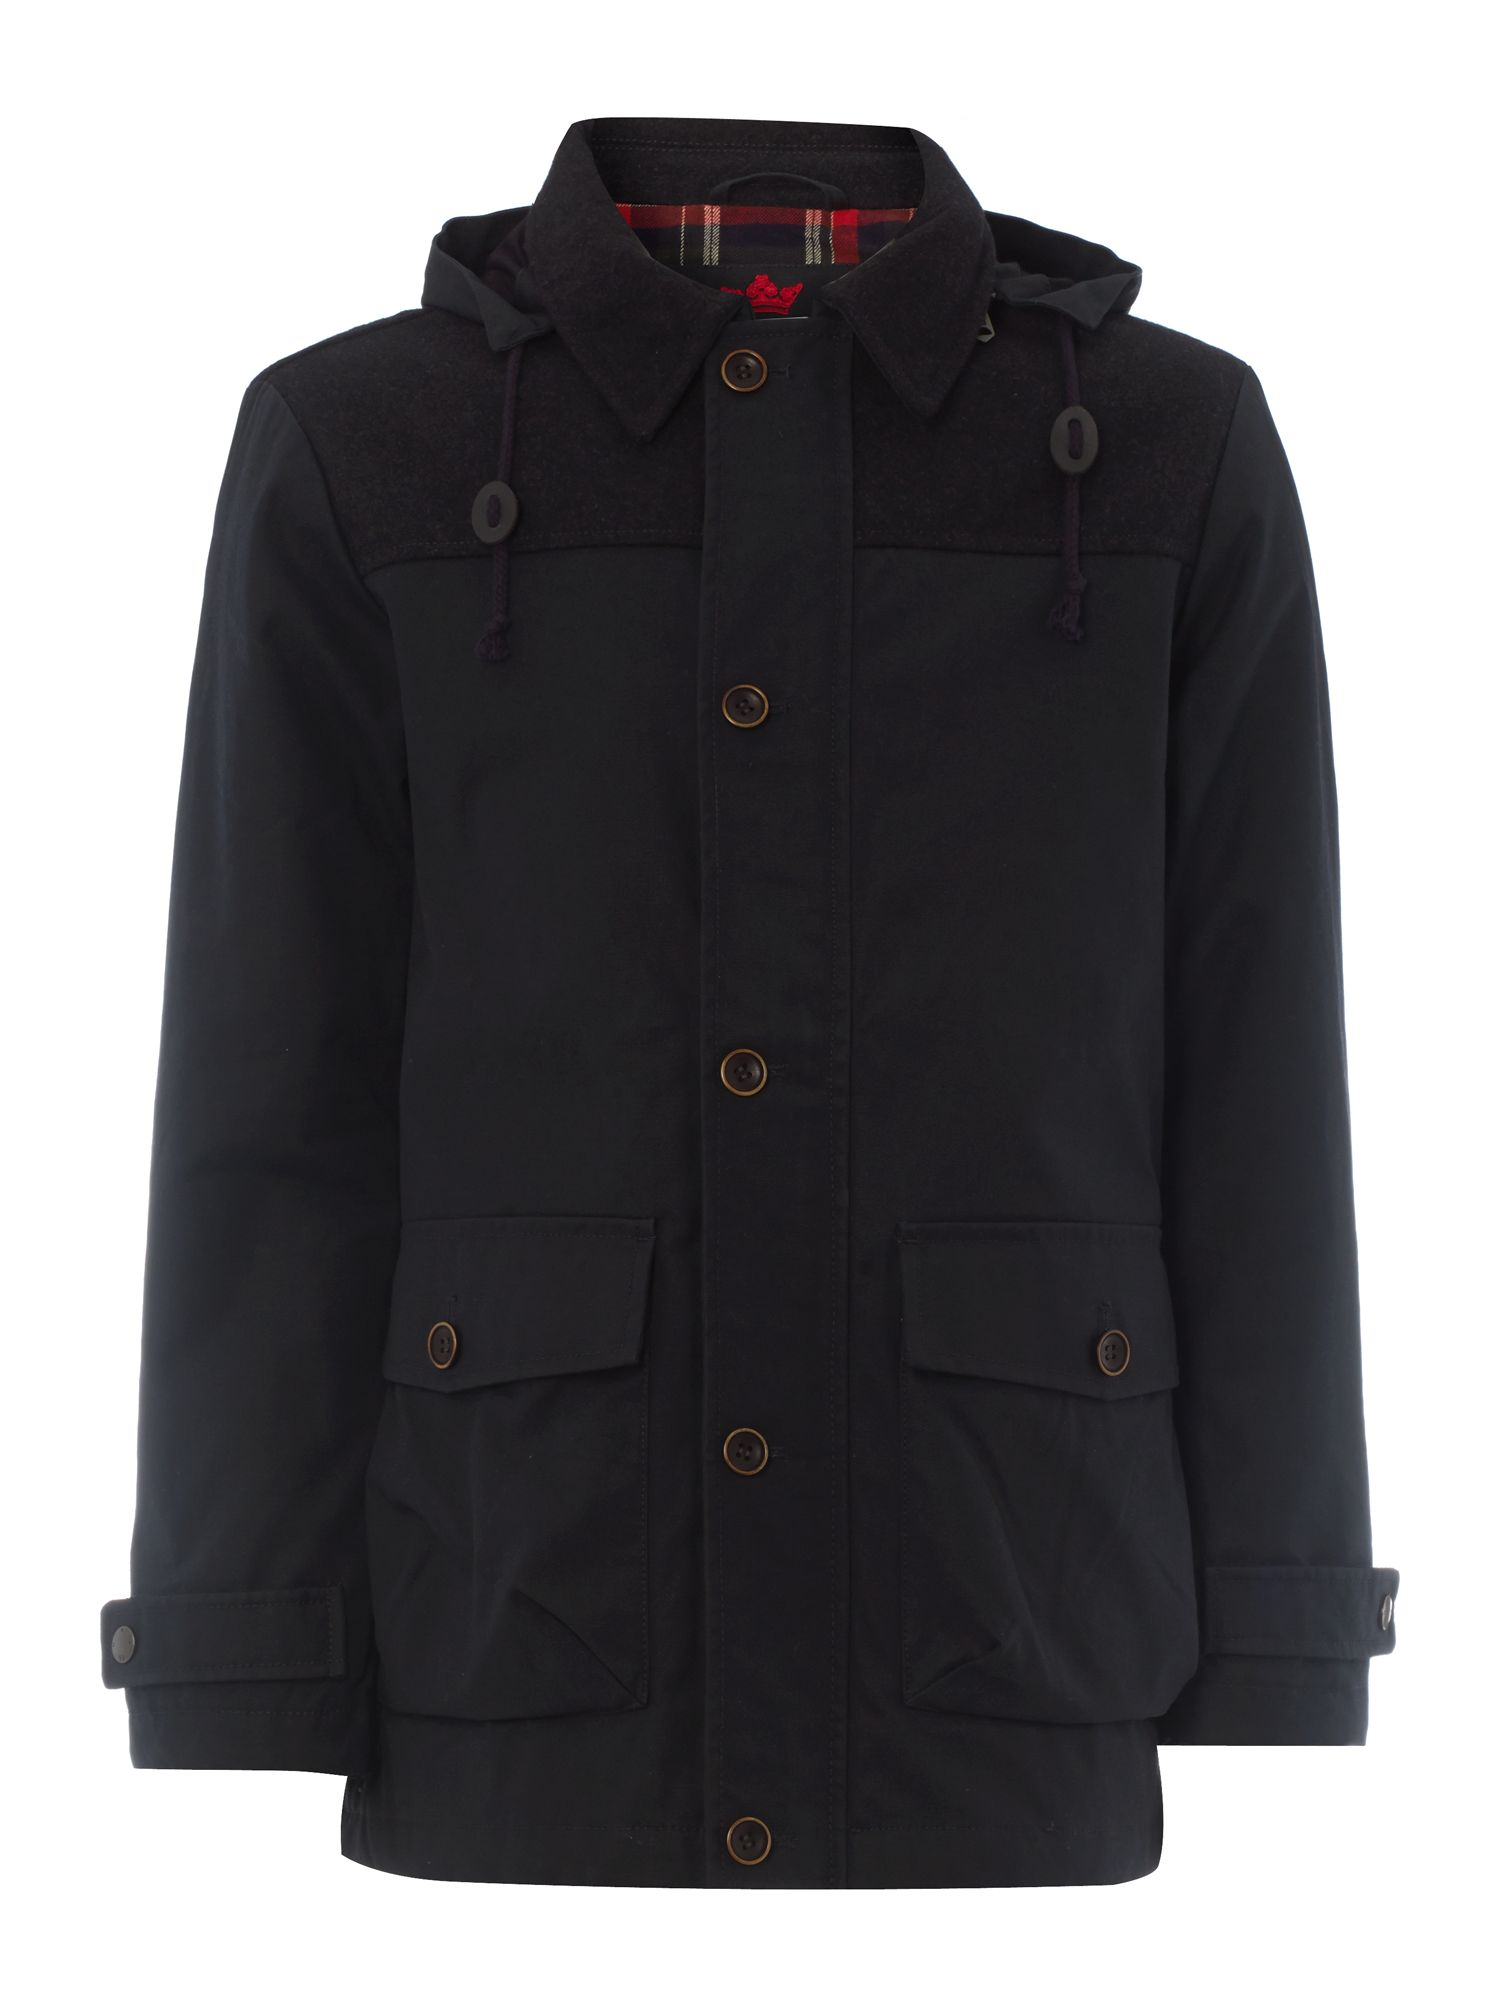 Shirebrook hooded jacket